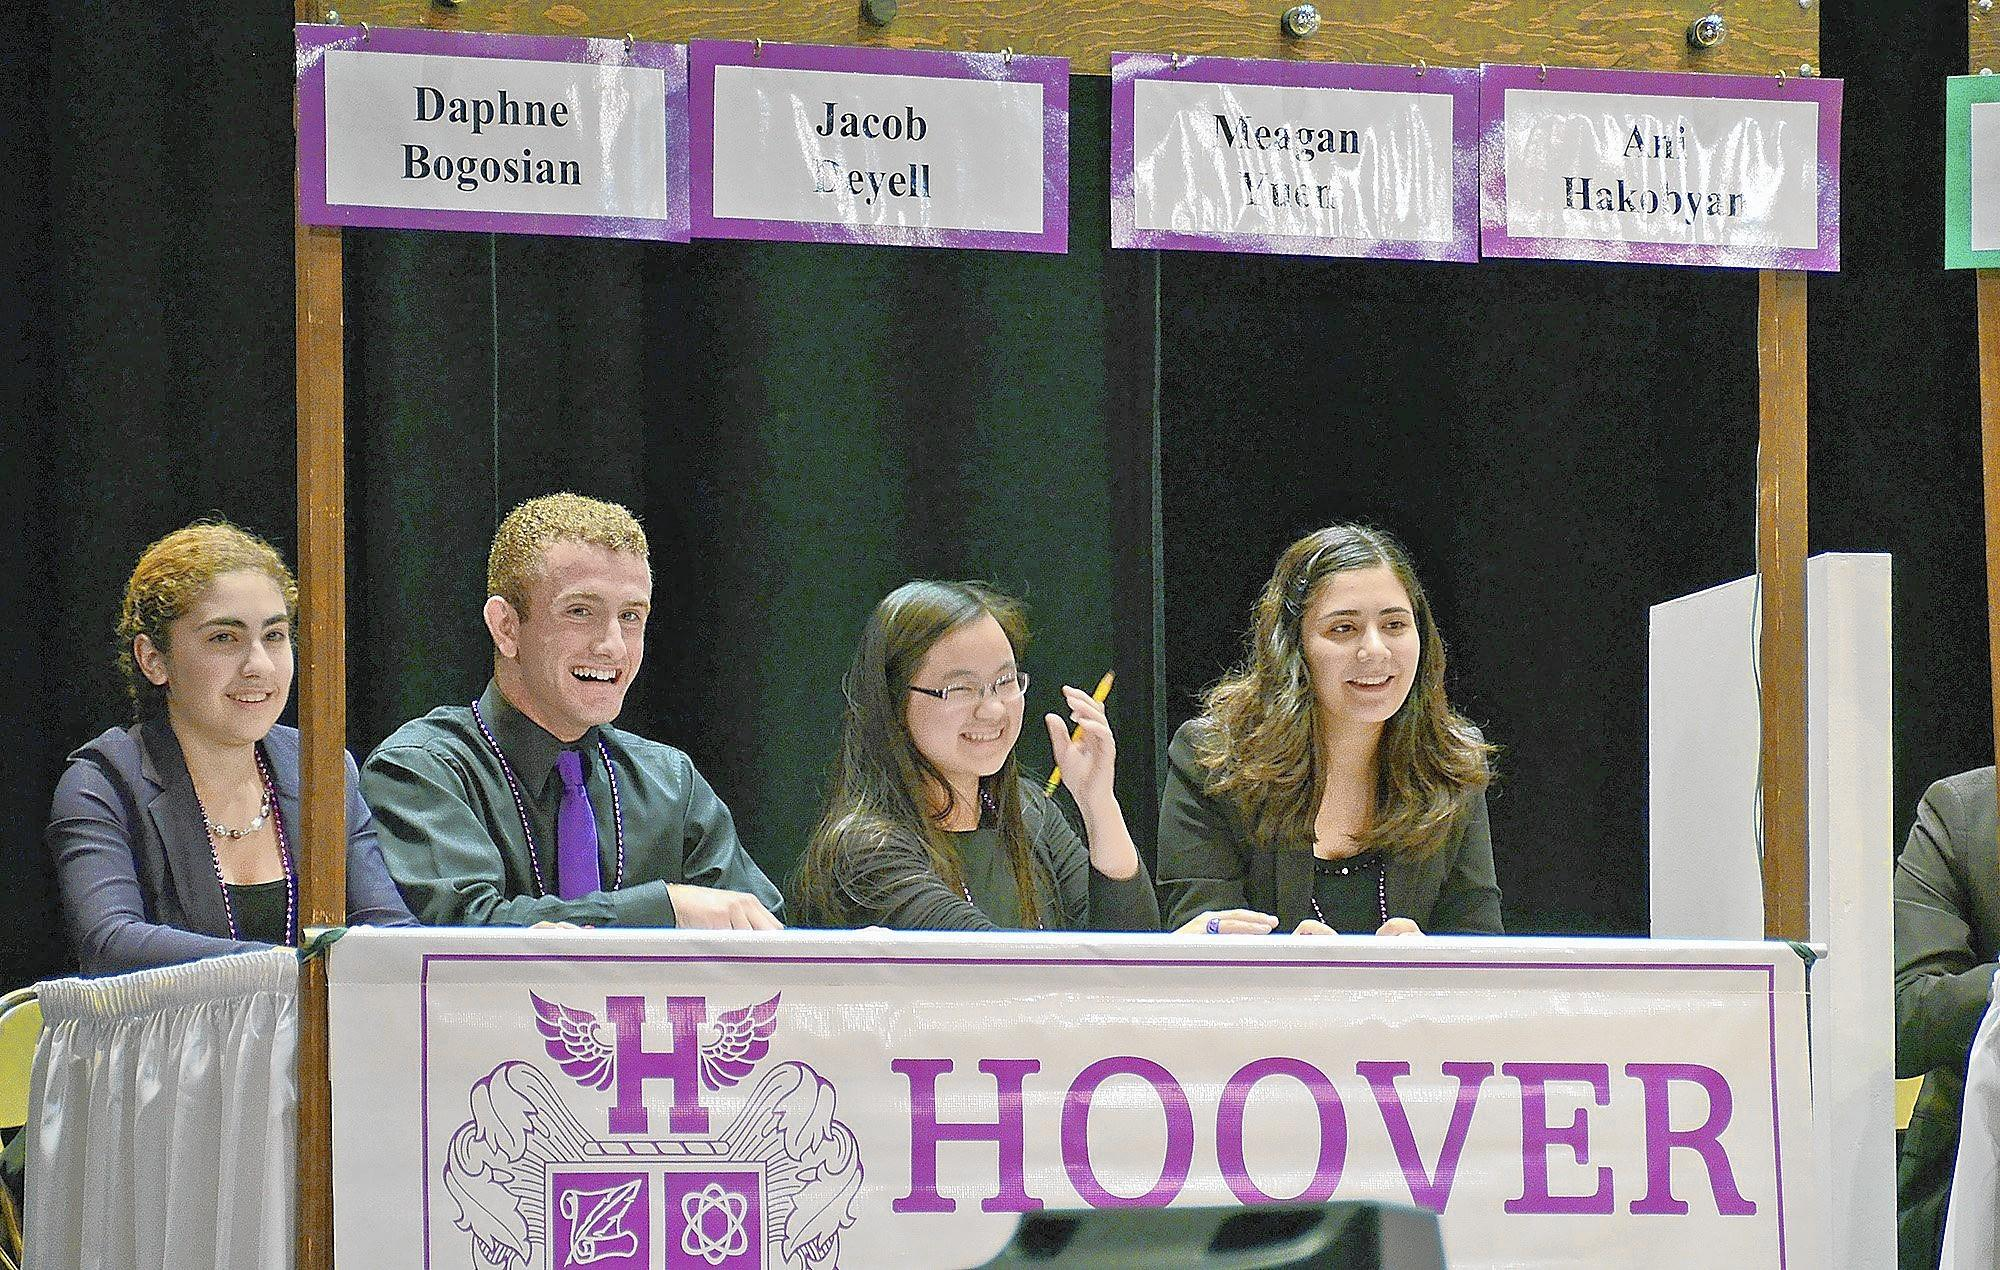 Hoover High School won the 24th Annual Glendale Unified School District High School Scholastic Bowl this week at Glendale High School's auditorium. In addition to winning the competition against the other three high schools, Clark Magnet, Crescenta Valley and Glendale, Hoover also won the essay contest last week. from left to right: Daphne Bogosian, Jacob Deyell, Meagan Yuen and Ani Hakobyan (not pictured Young Cho.)